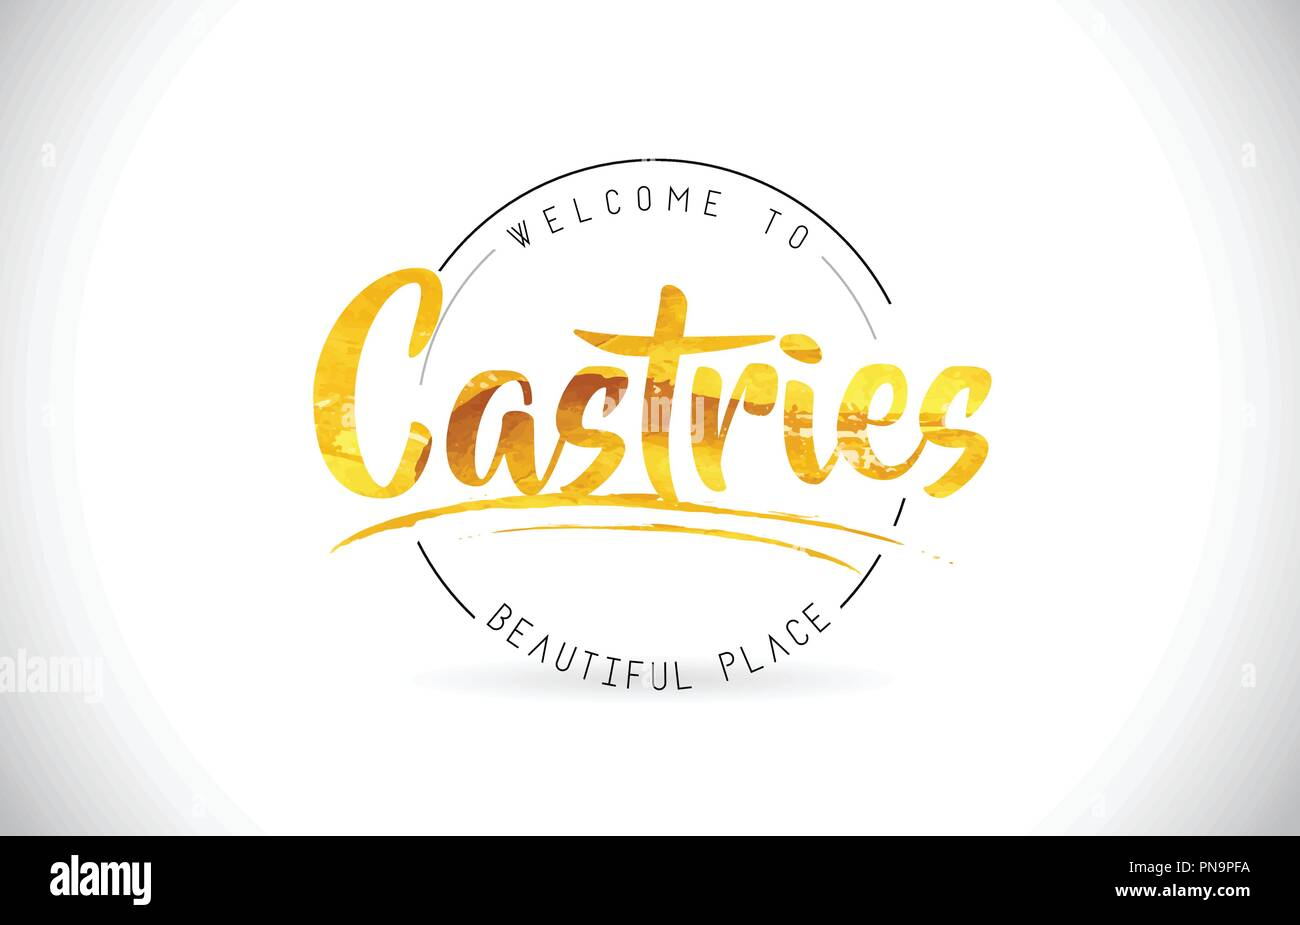 Castries Welcome To Word Text with Handwritten Font and Golden Texture Design Illustration Vector. - Stock Image